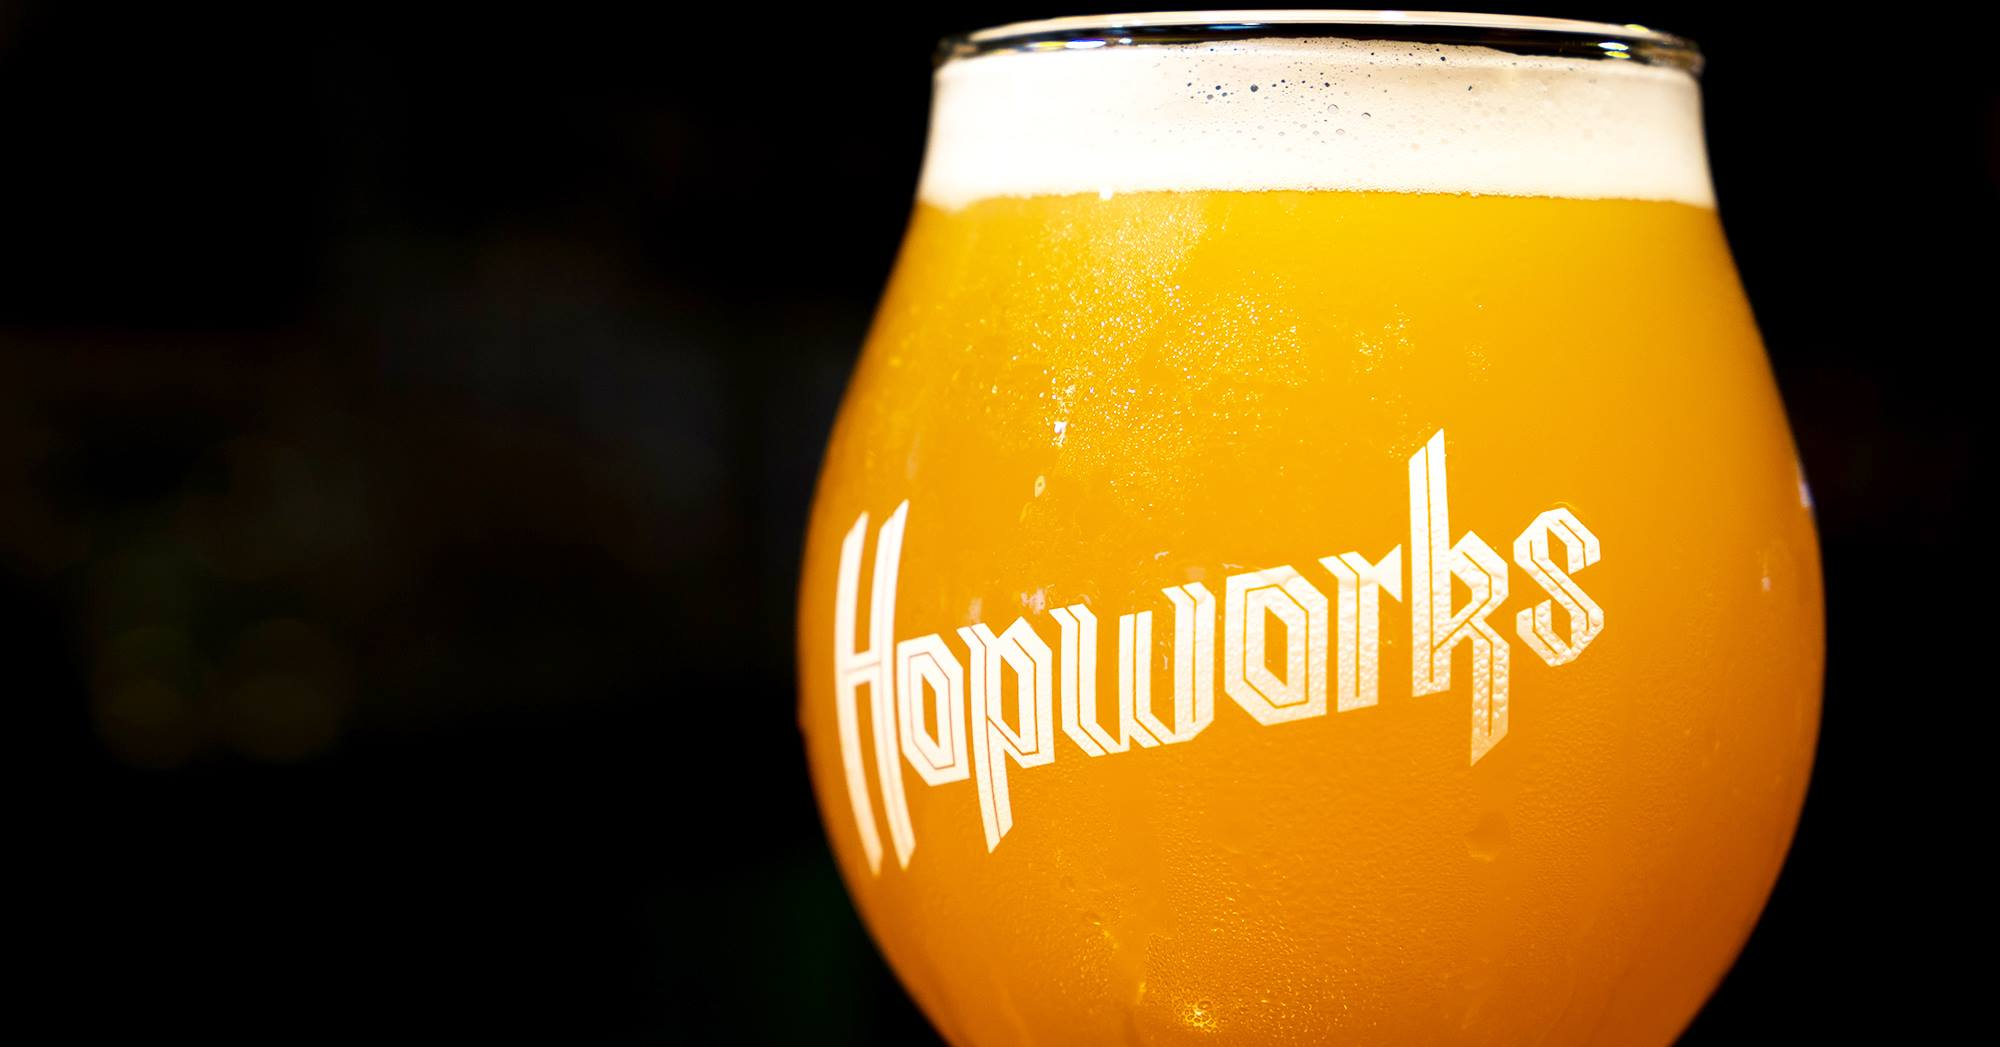 Hopworks Urban Brewery Welcomes In 2018 With Destroyah and Staycation Hazy IPAs